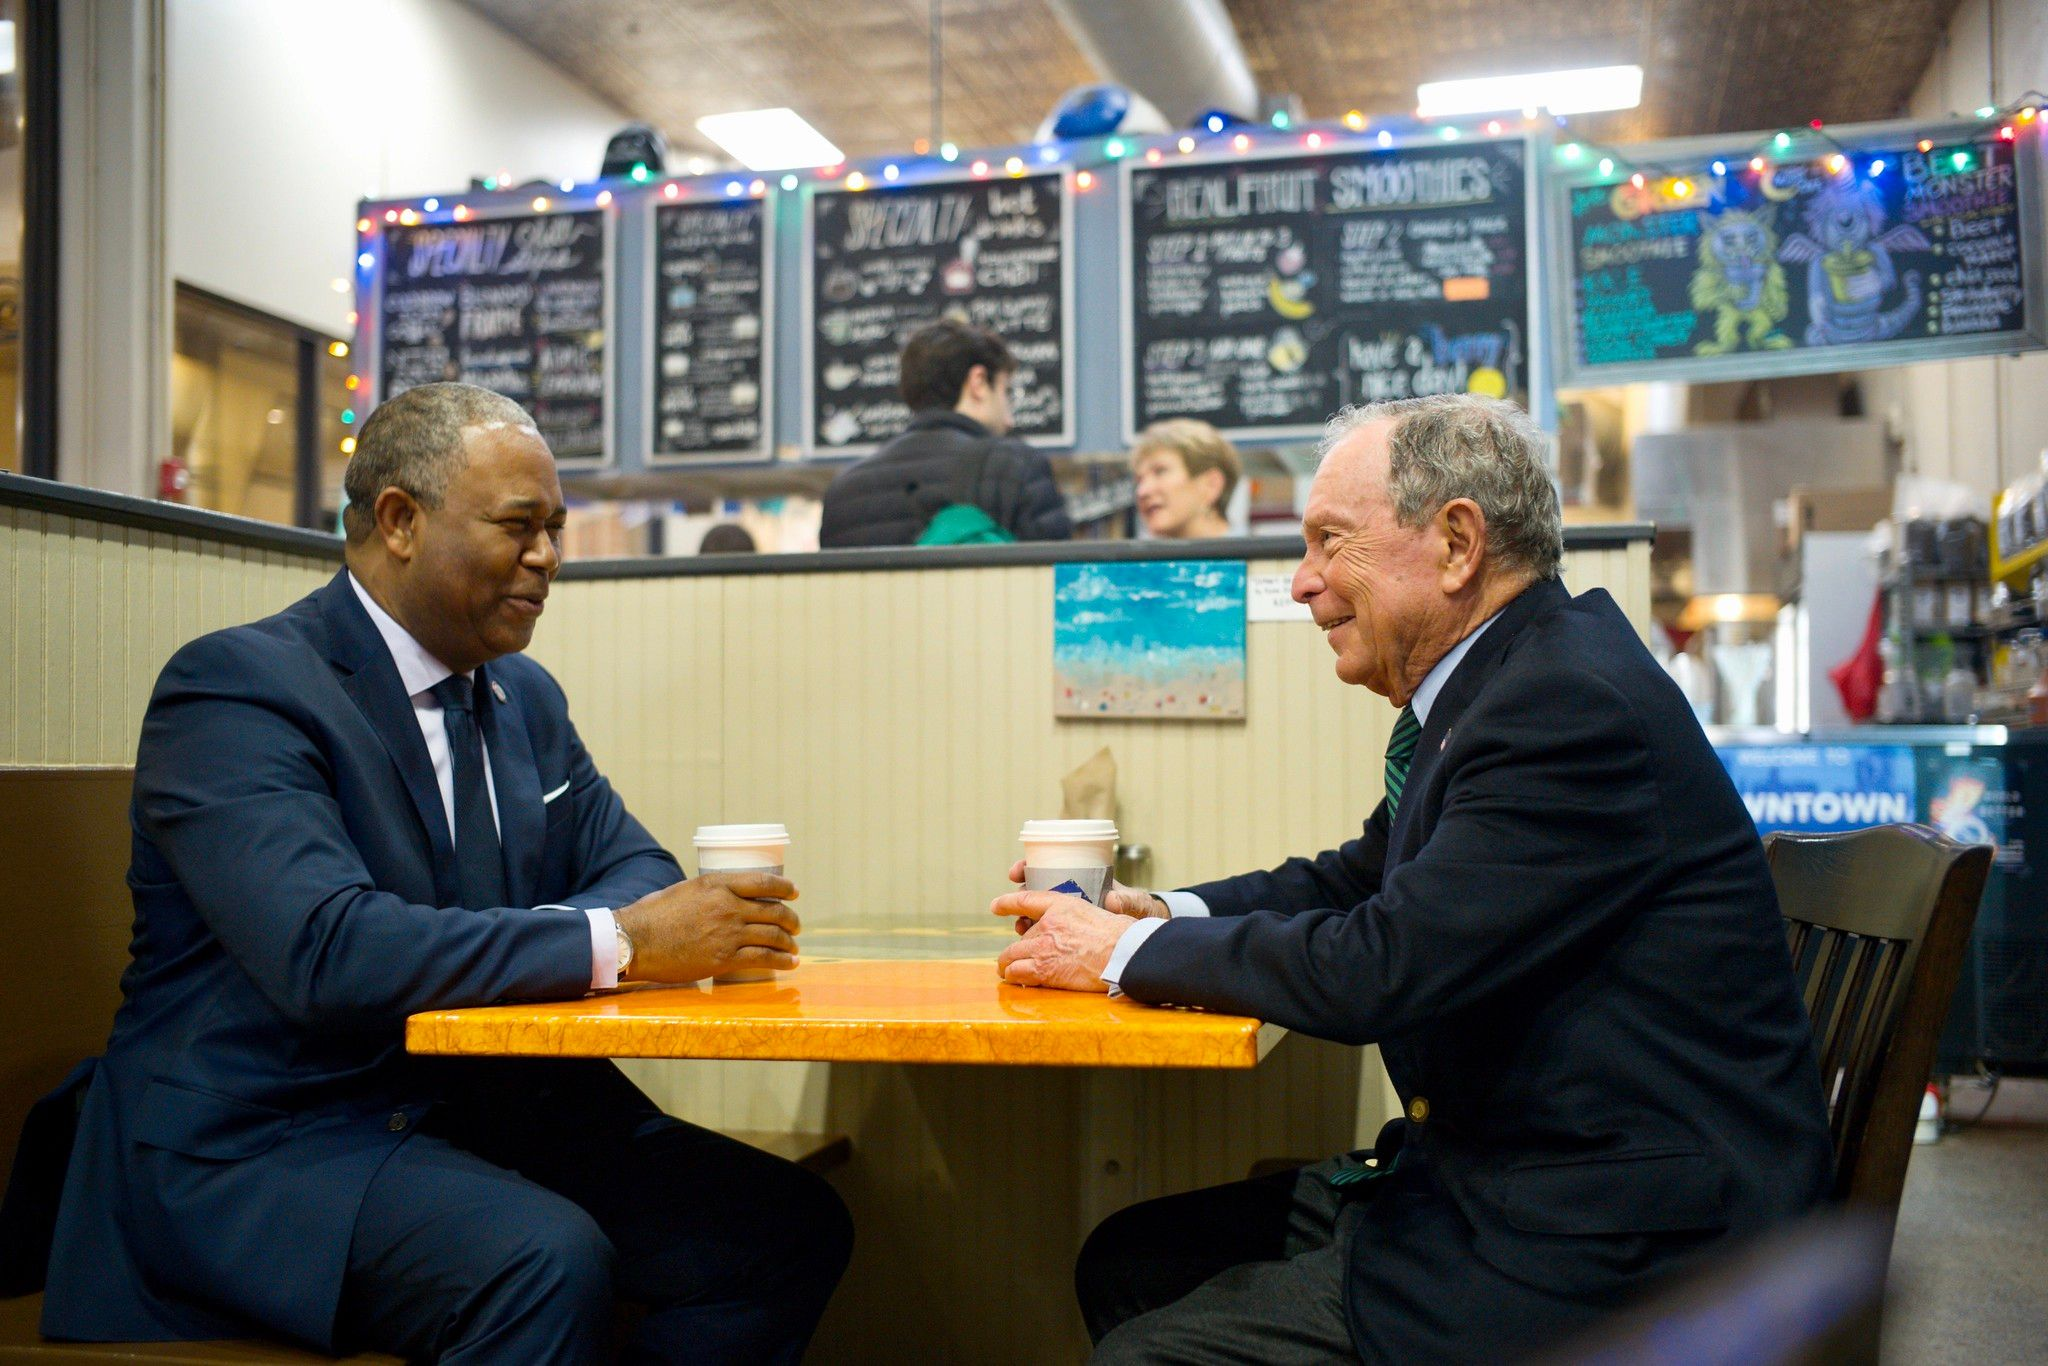 Mike Bloomberg meets with Mayor Hardie Davis, Jr. at New Moon Cafe in Augusta, Georgia on December 6, 2019.